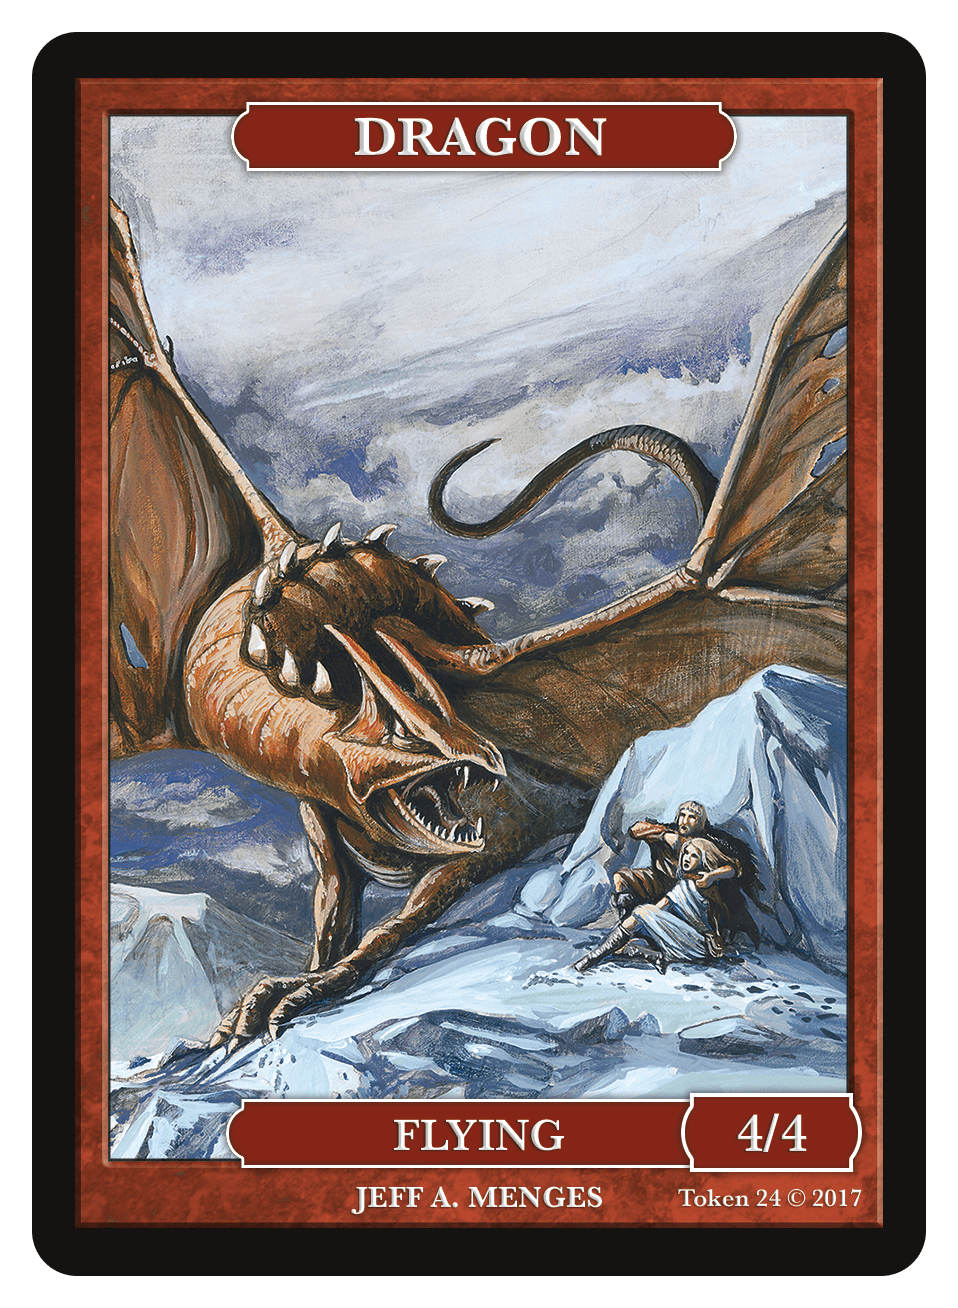 Dragon Token (4/4) by Jeff A. Menges - Token - Original Magic Art - Accessories for Magic the Gathering and other card games